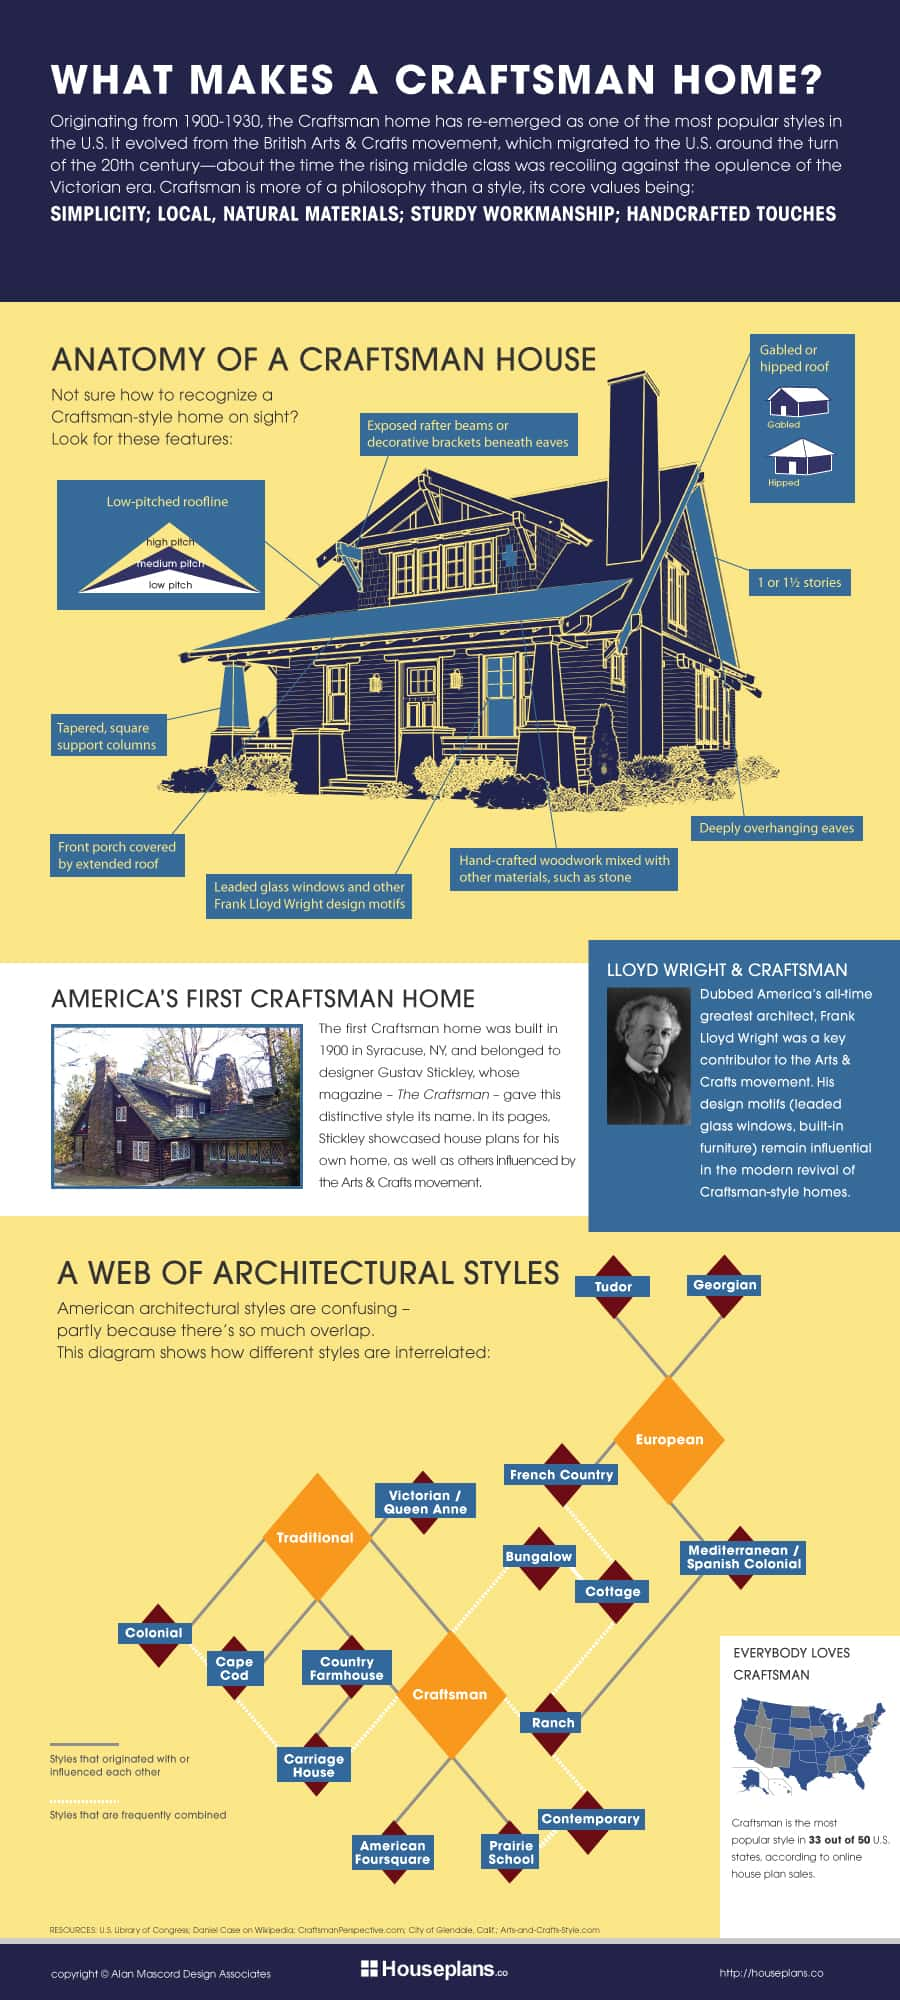 What Makes a Craftsman Home?